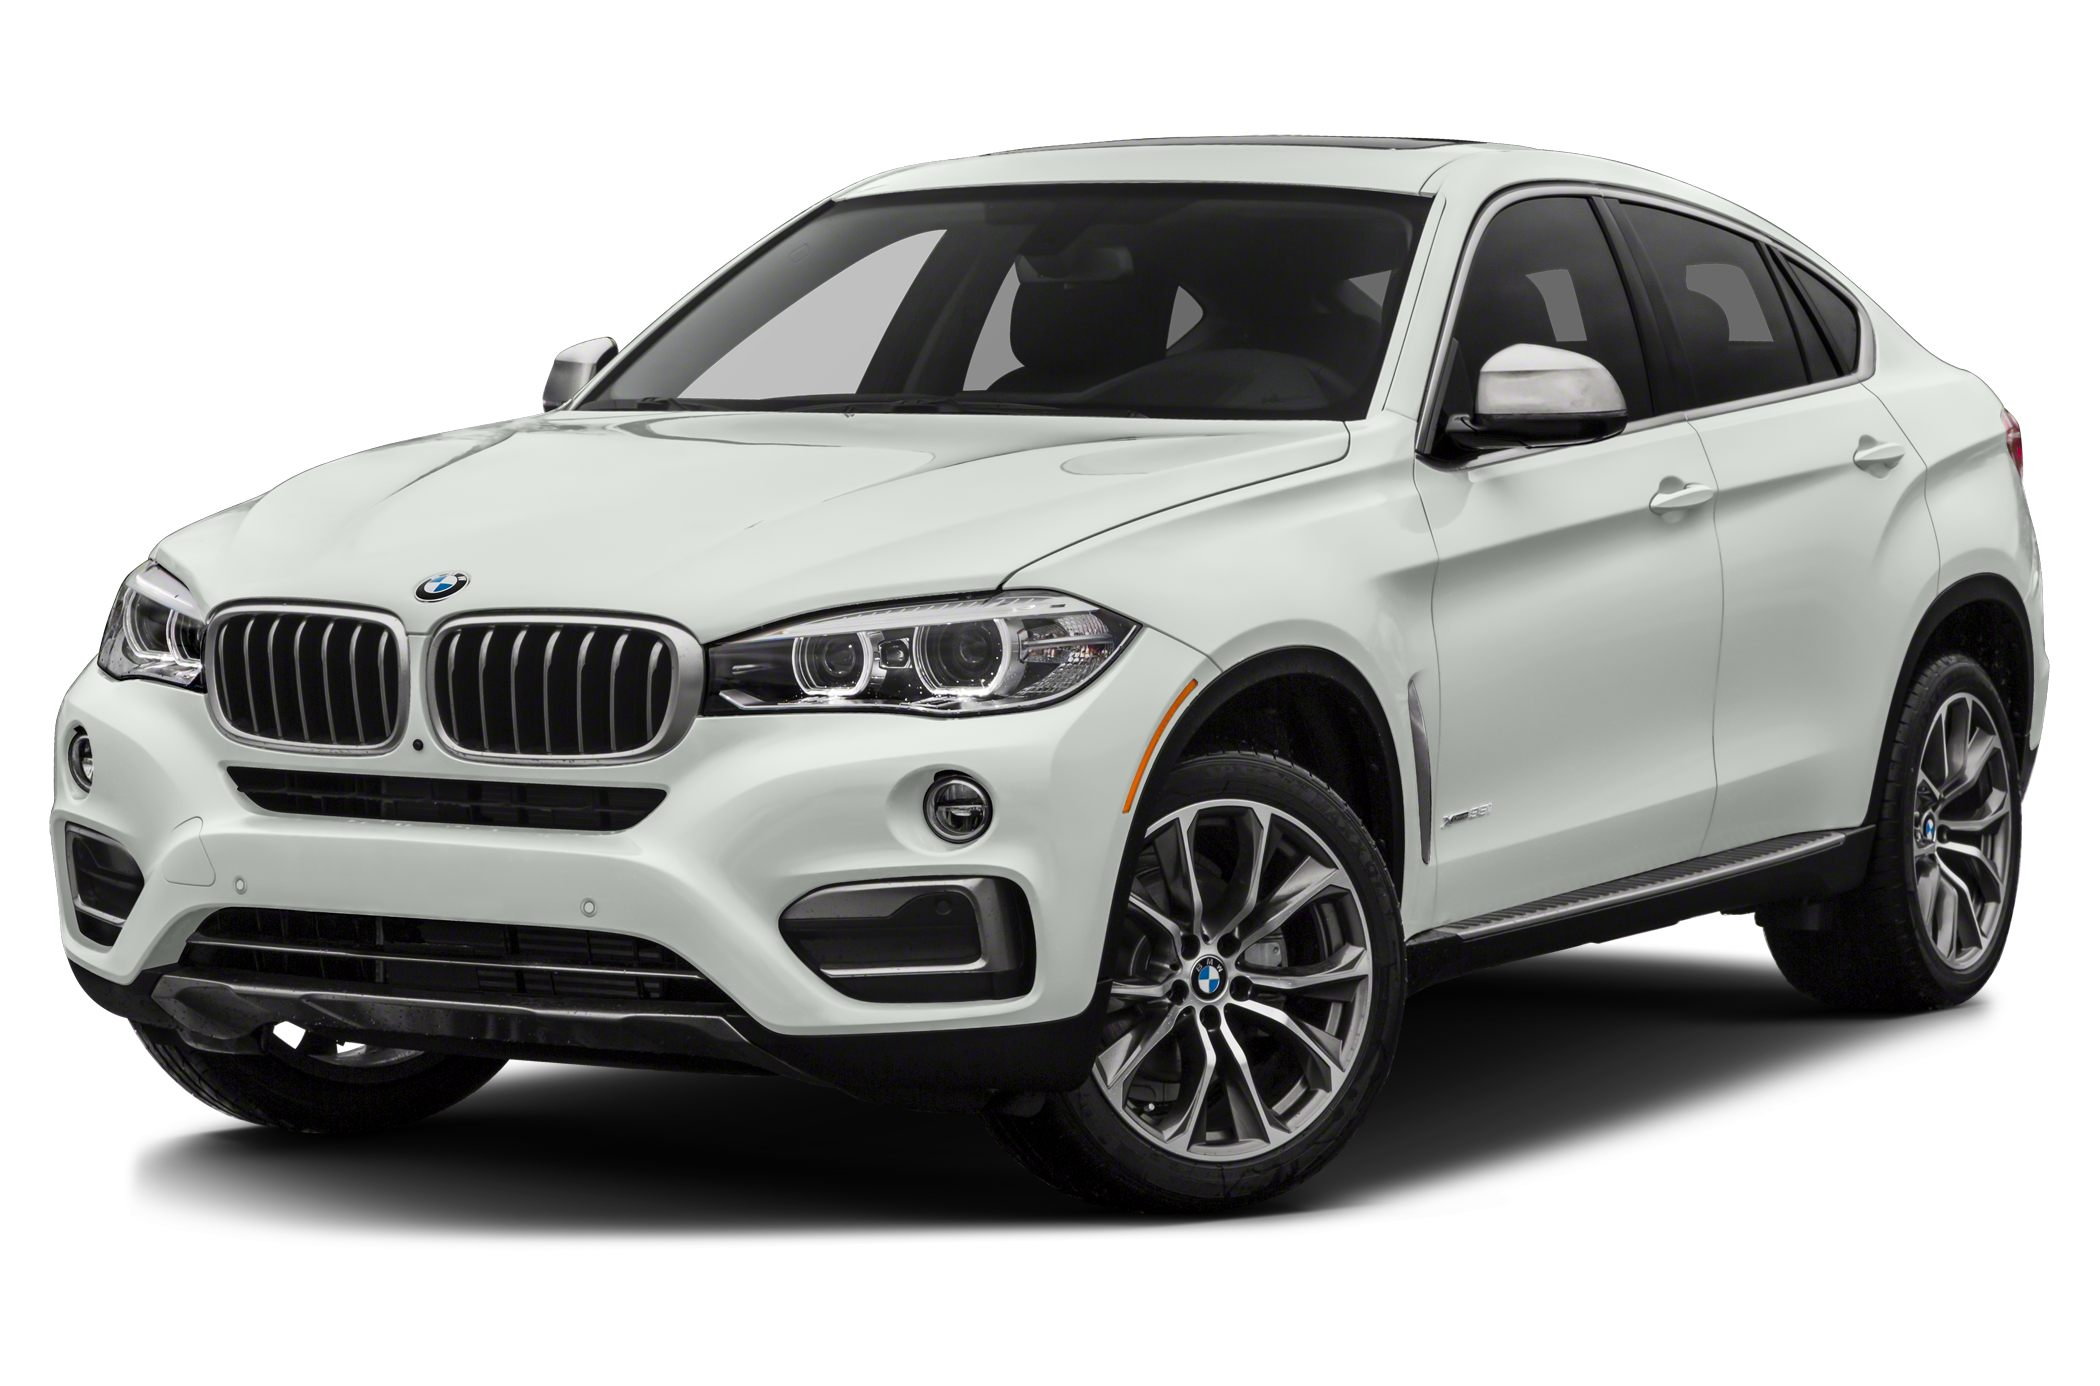 Used Cars Minneapolis Lovely Minneapolis Mn Used Bmws for Sale Under 60 000 Miles and Less Than